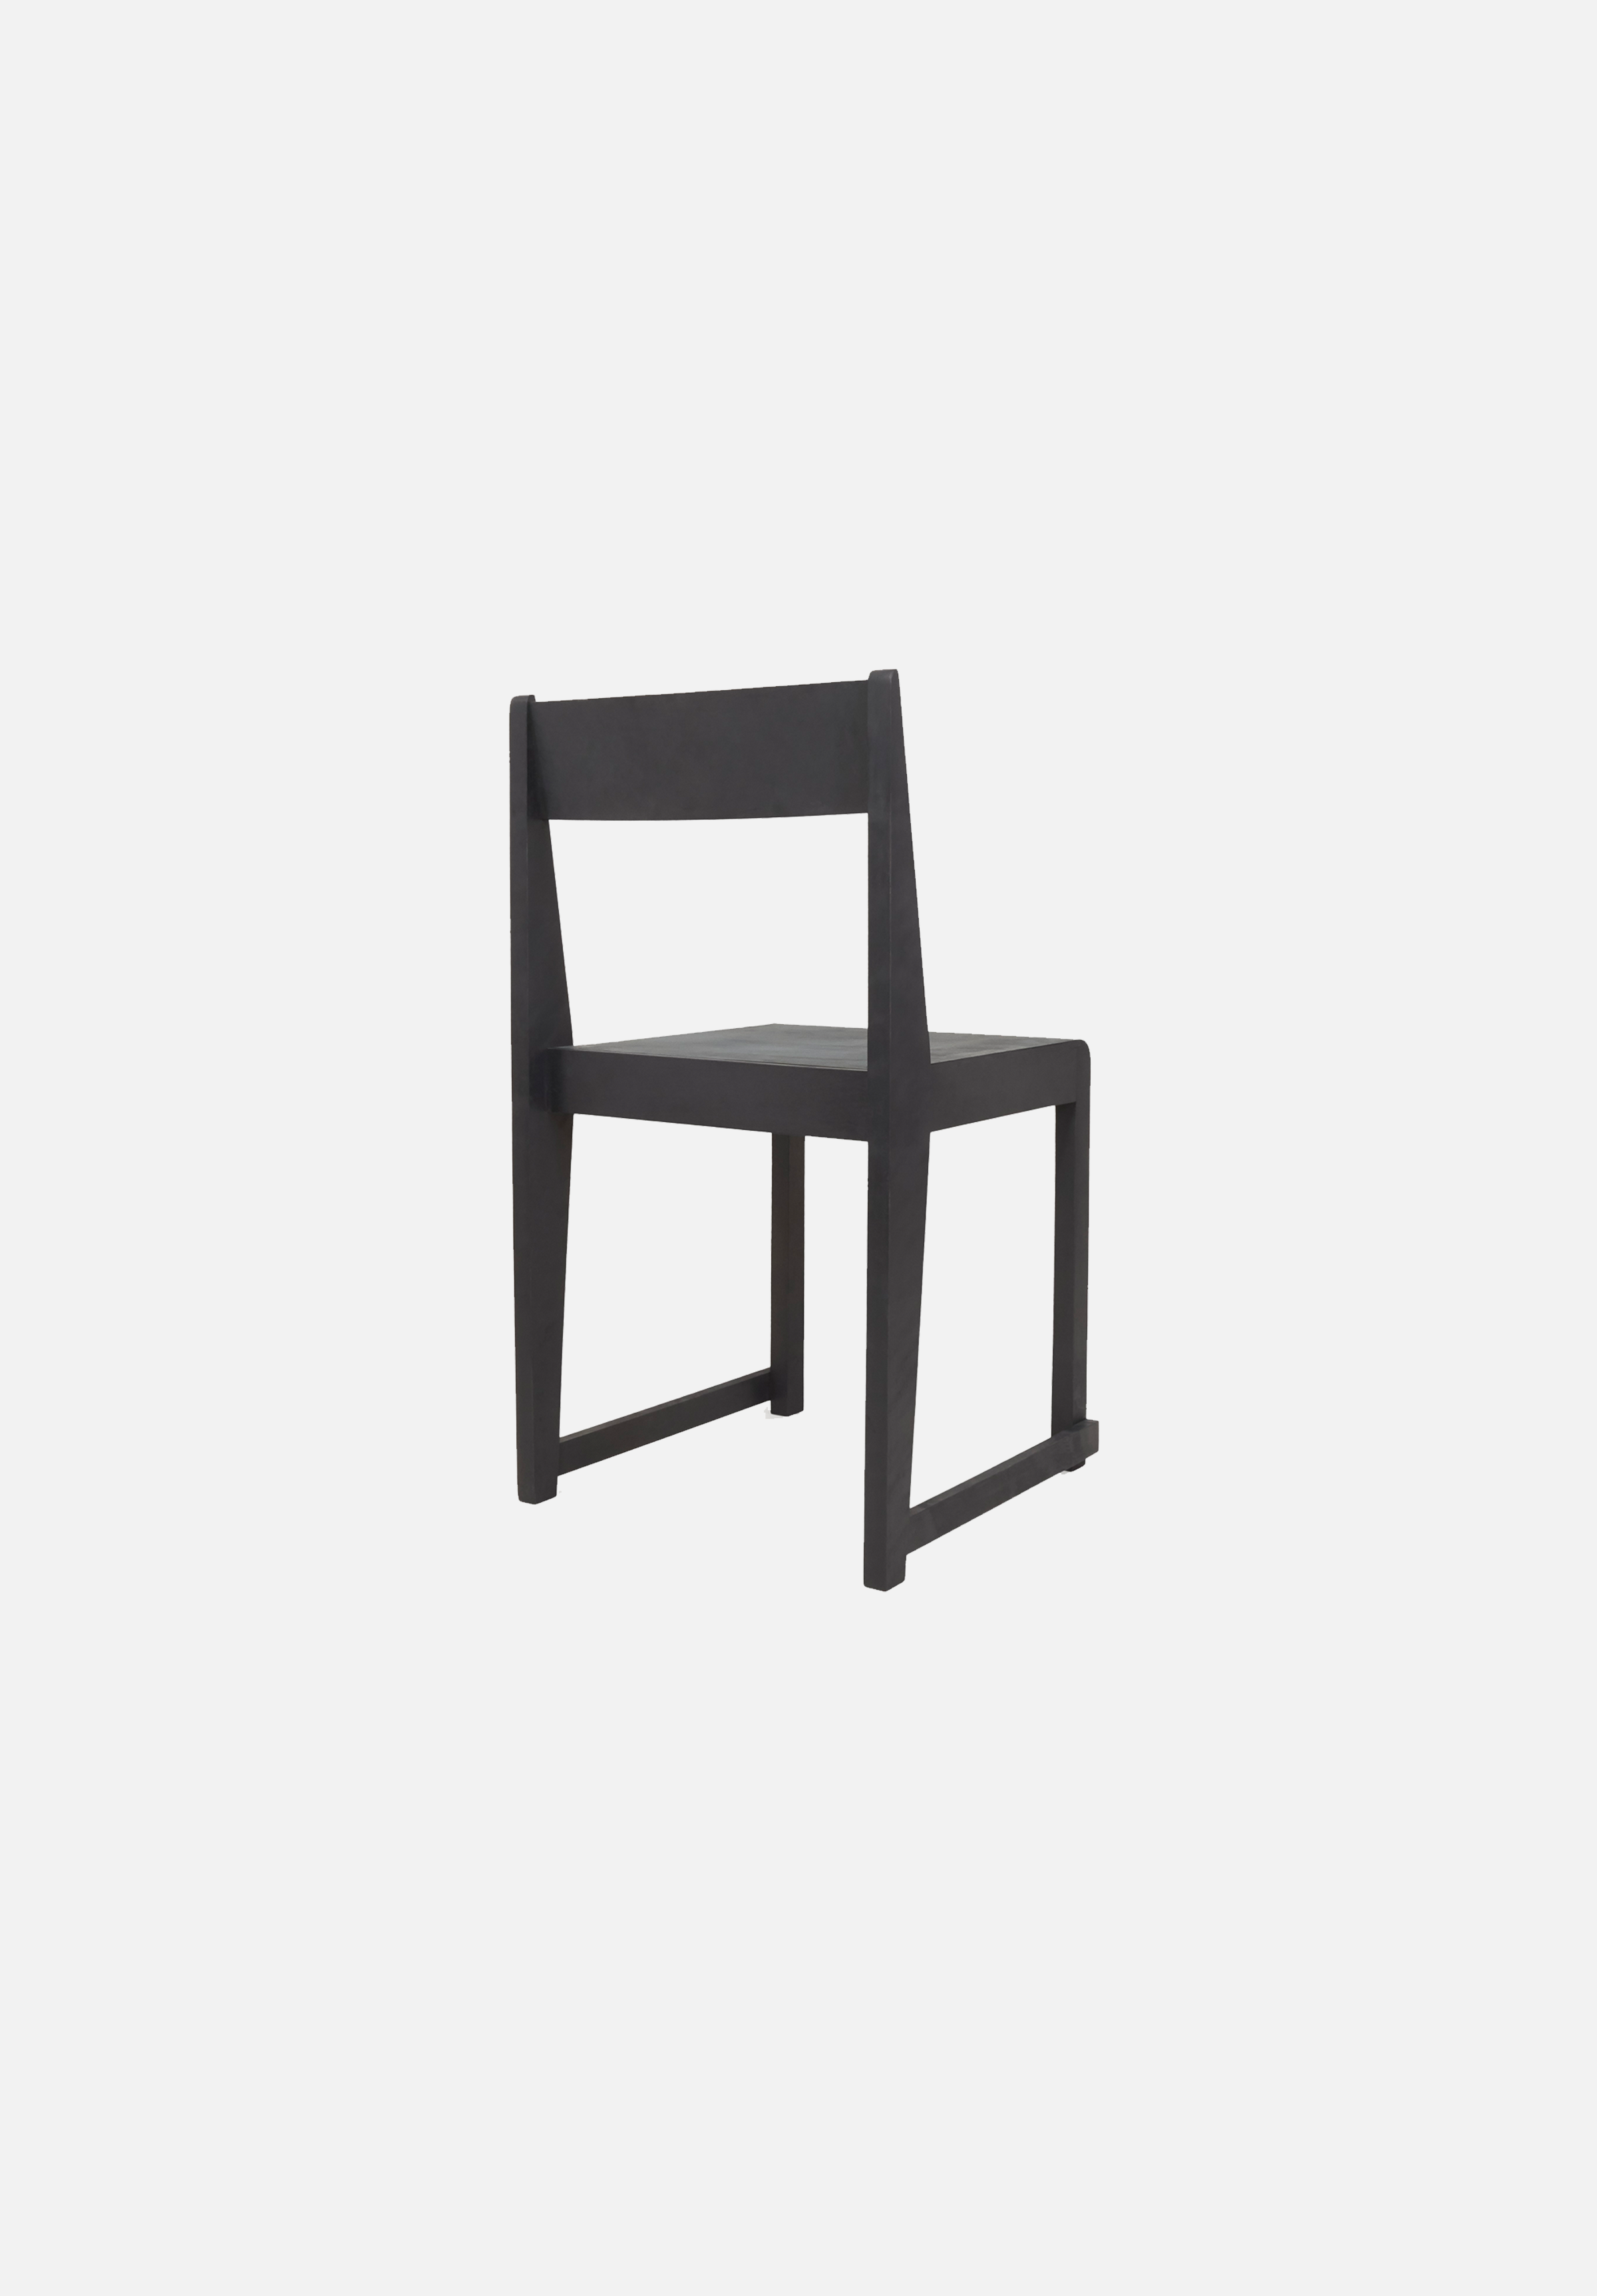 Chair 01 — Black, Leather Seat